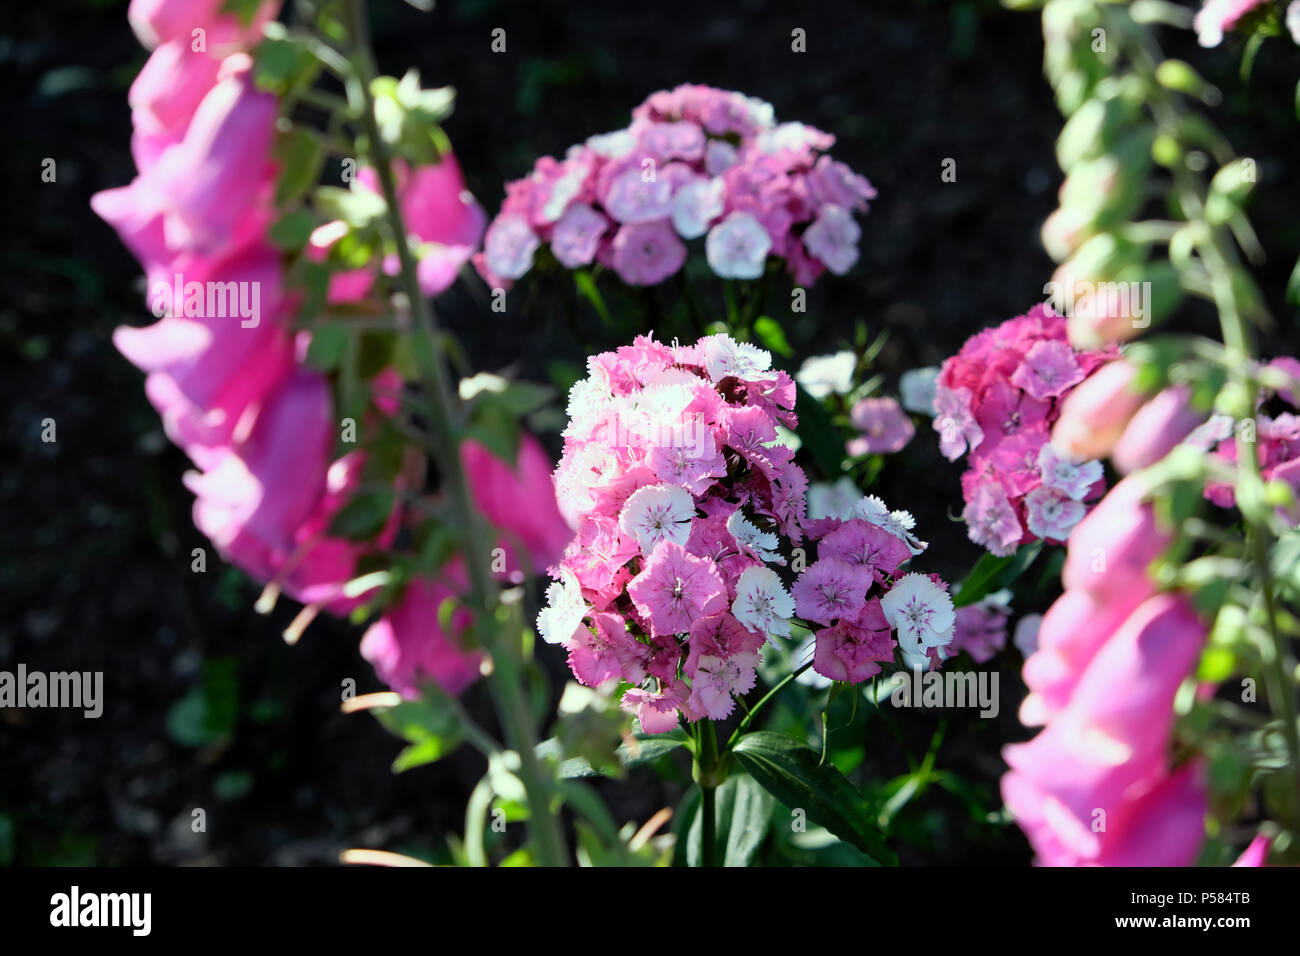 Pink and white Sweet William biennial flowers in bloom growing together with wild purple foxglove plants in June summer West Wales, UK    KATHY DEWITT - Stock Image